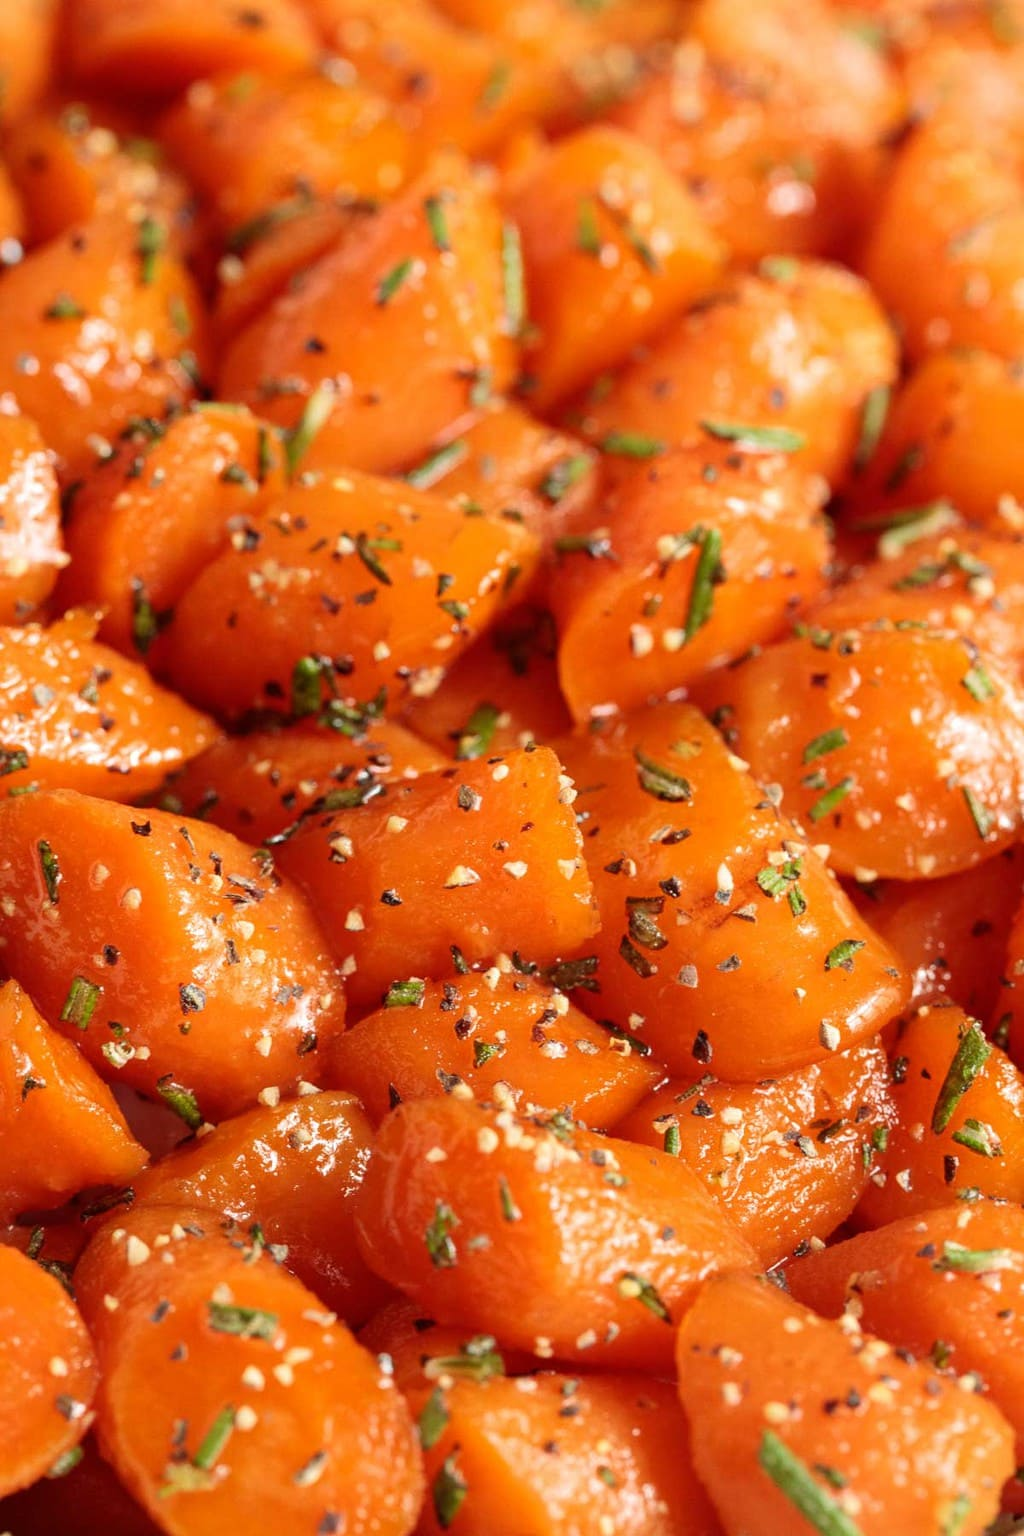 Extreme closeup photo of Rosemary Honey Glazed Carrots.